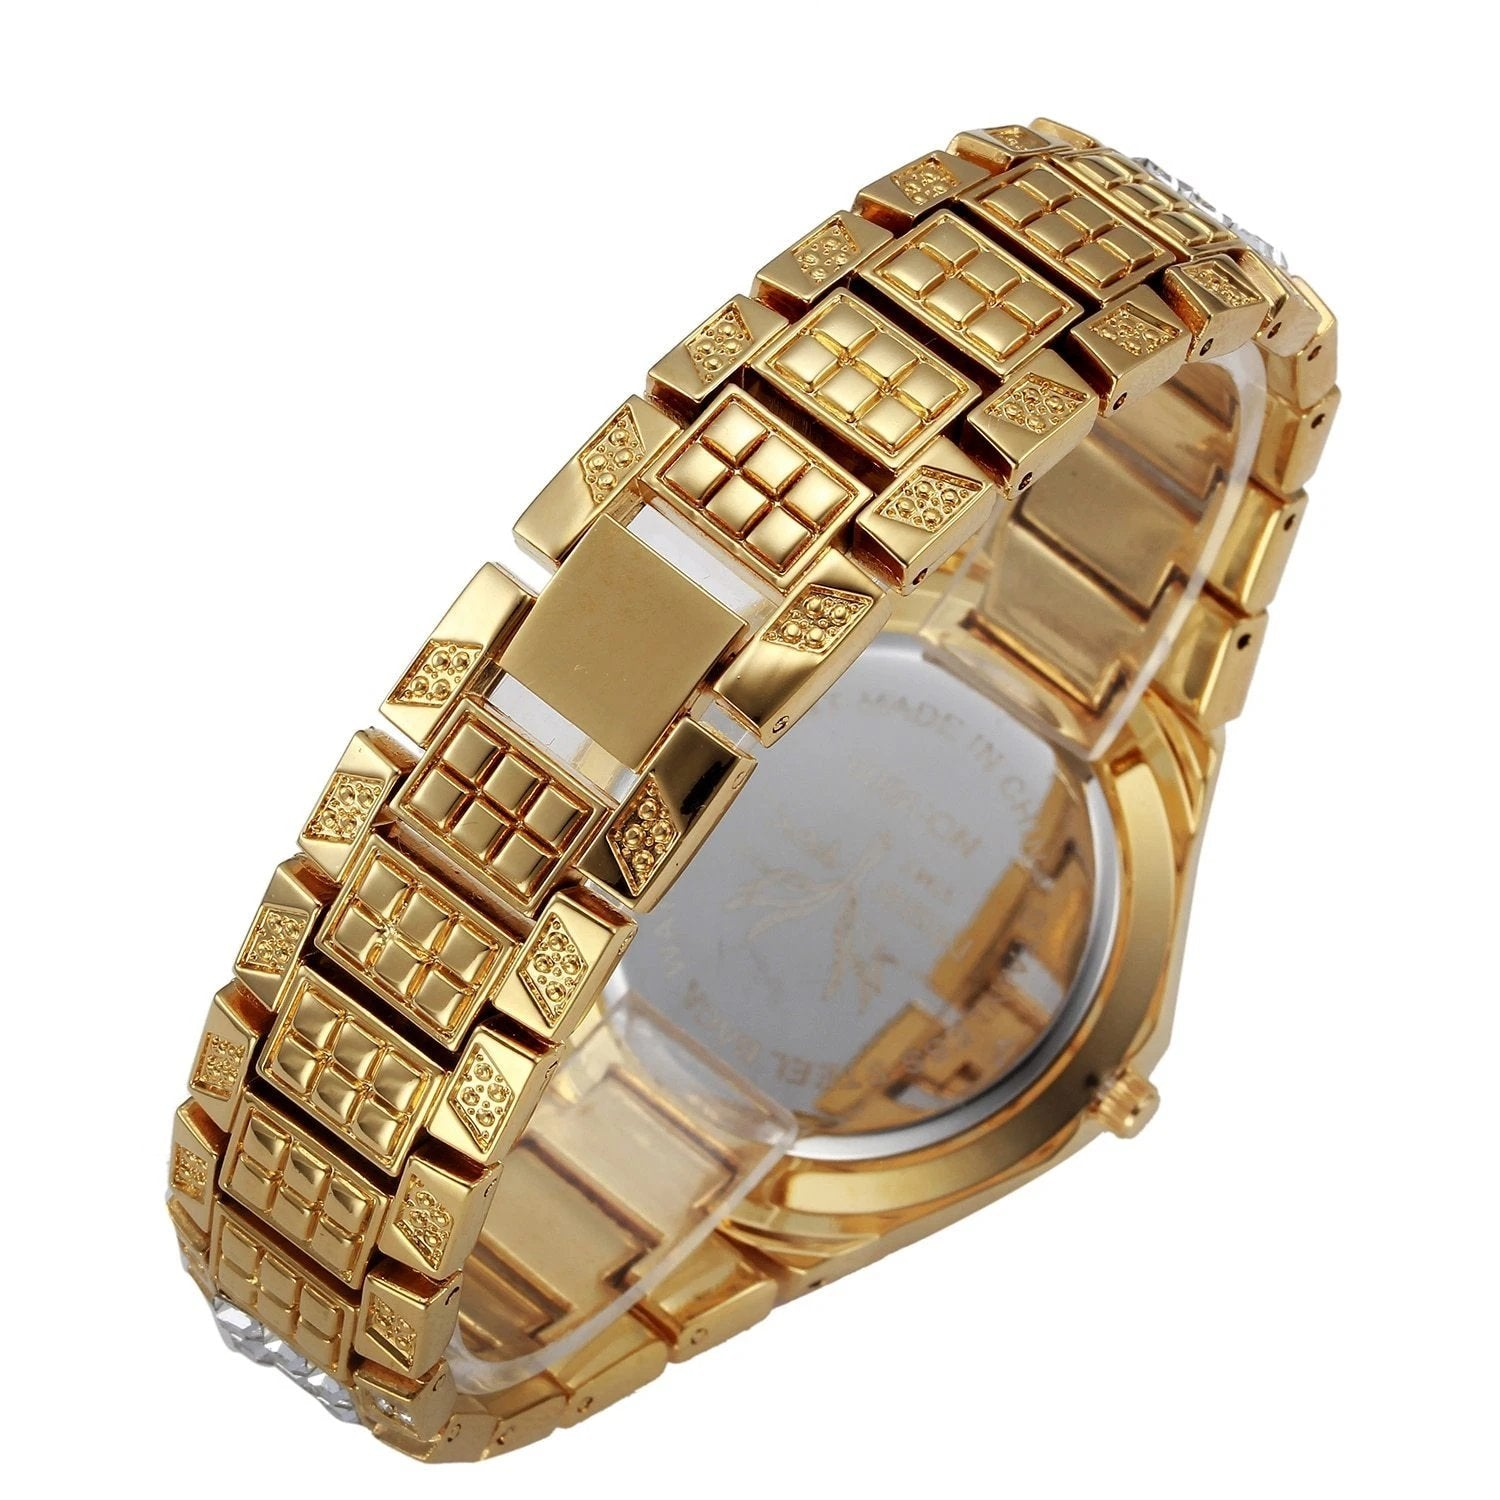 Baguette Quartz Diamond Watch Twenty 7 Links